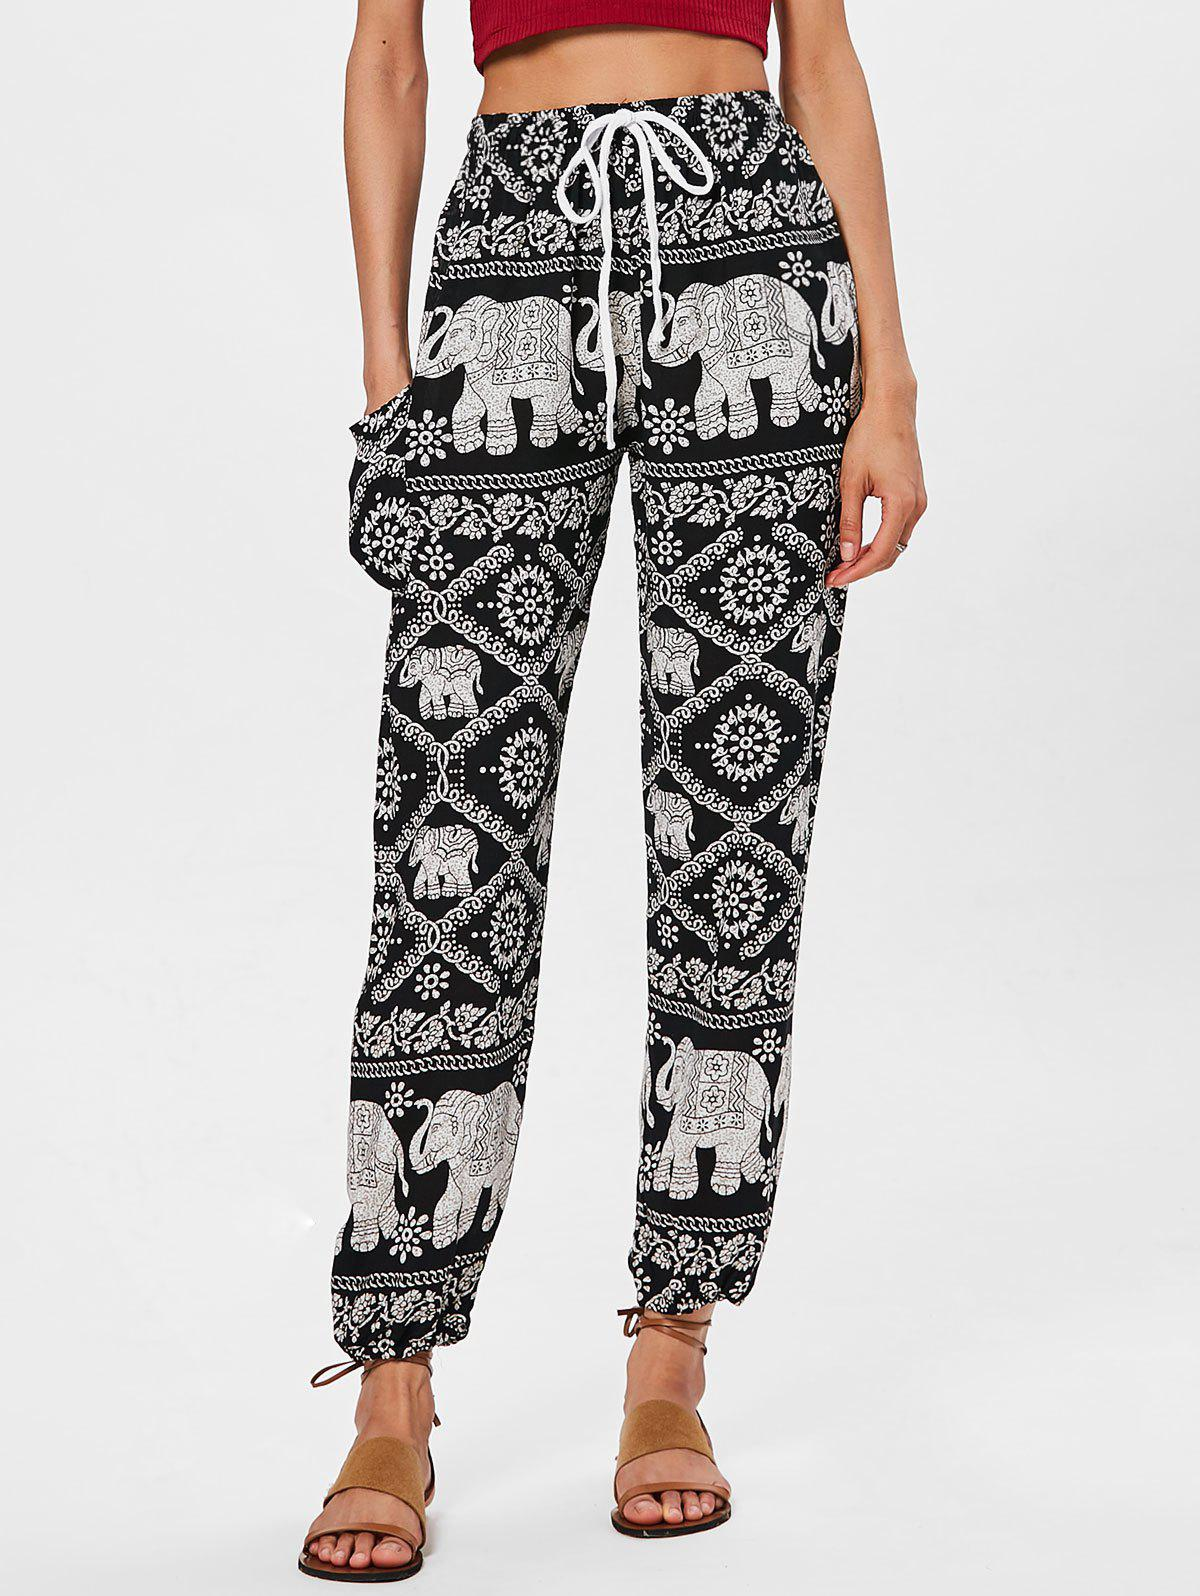 fd17db9003 50% OFF] High Rise Ethnic Print Beach Pants | Rosegal